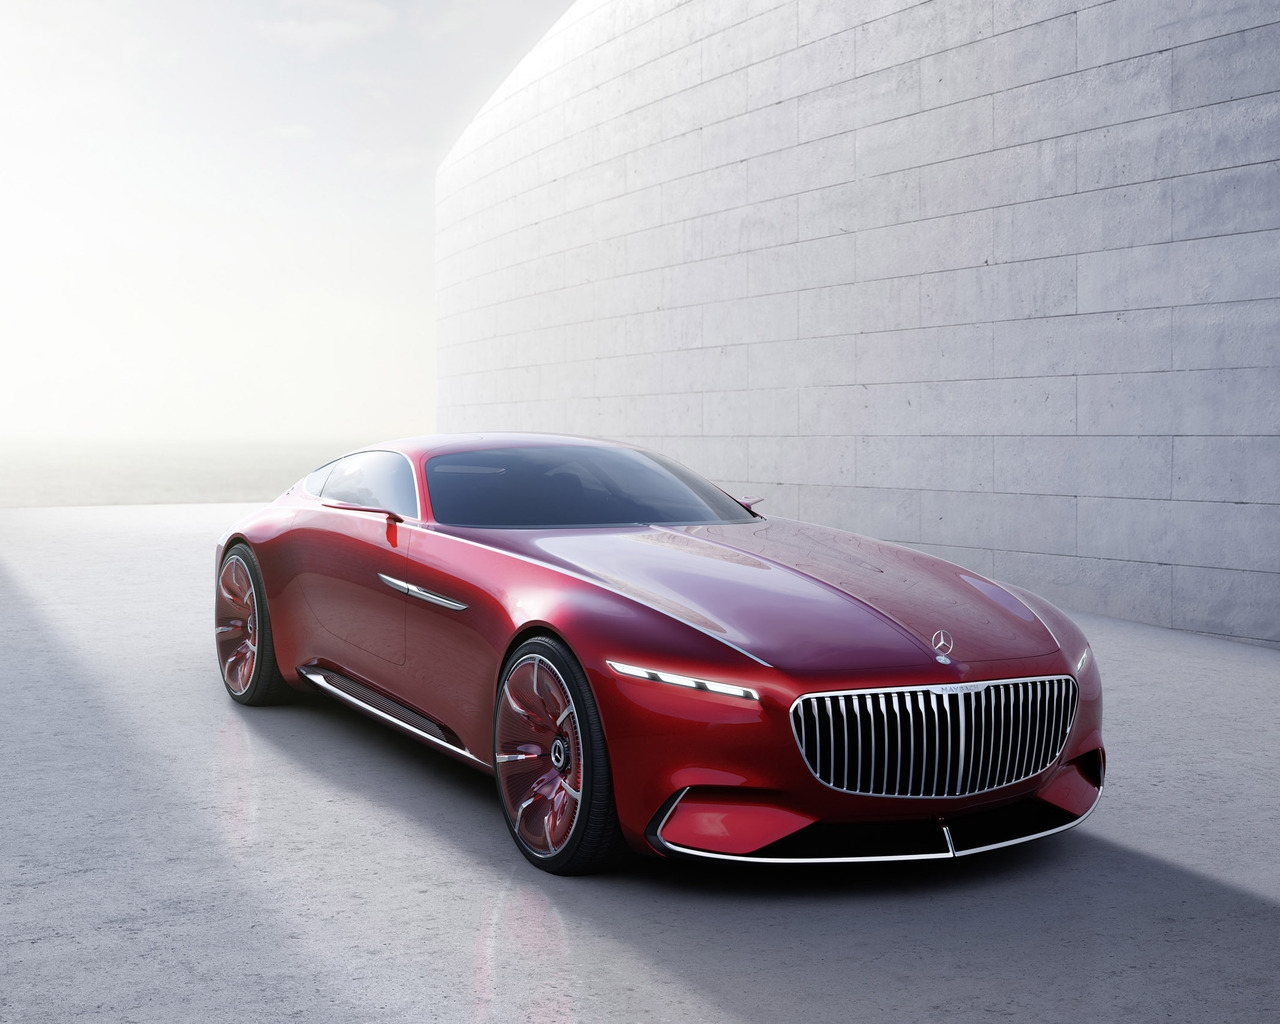 Maybach 6 2016 Concept Car for 1280 x 1024 resolution